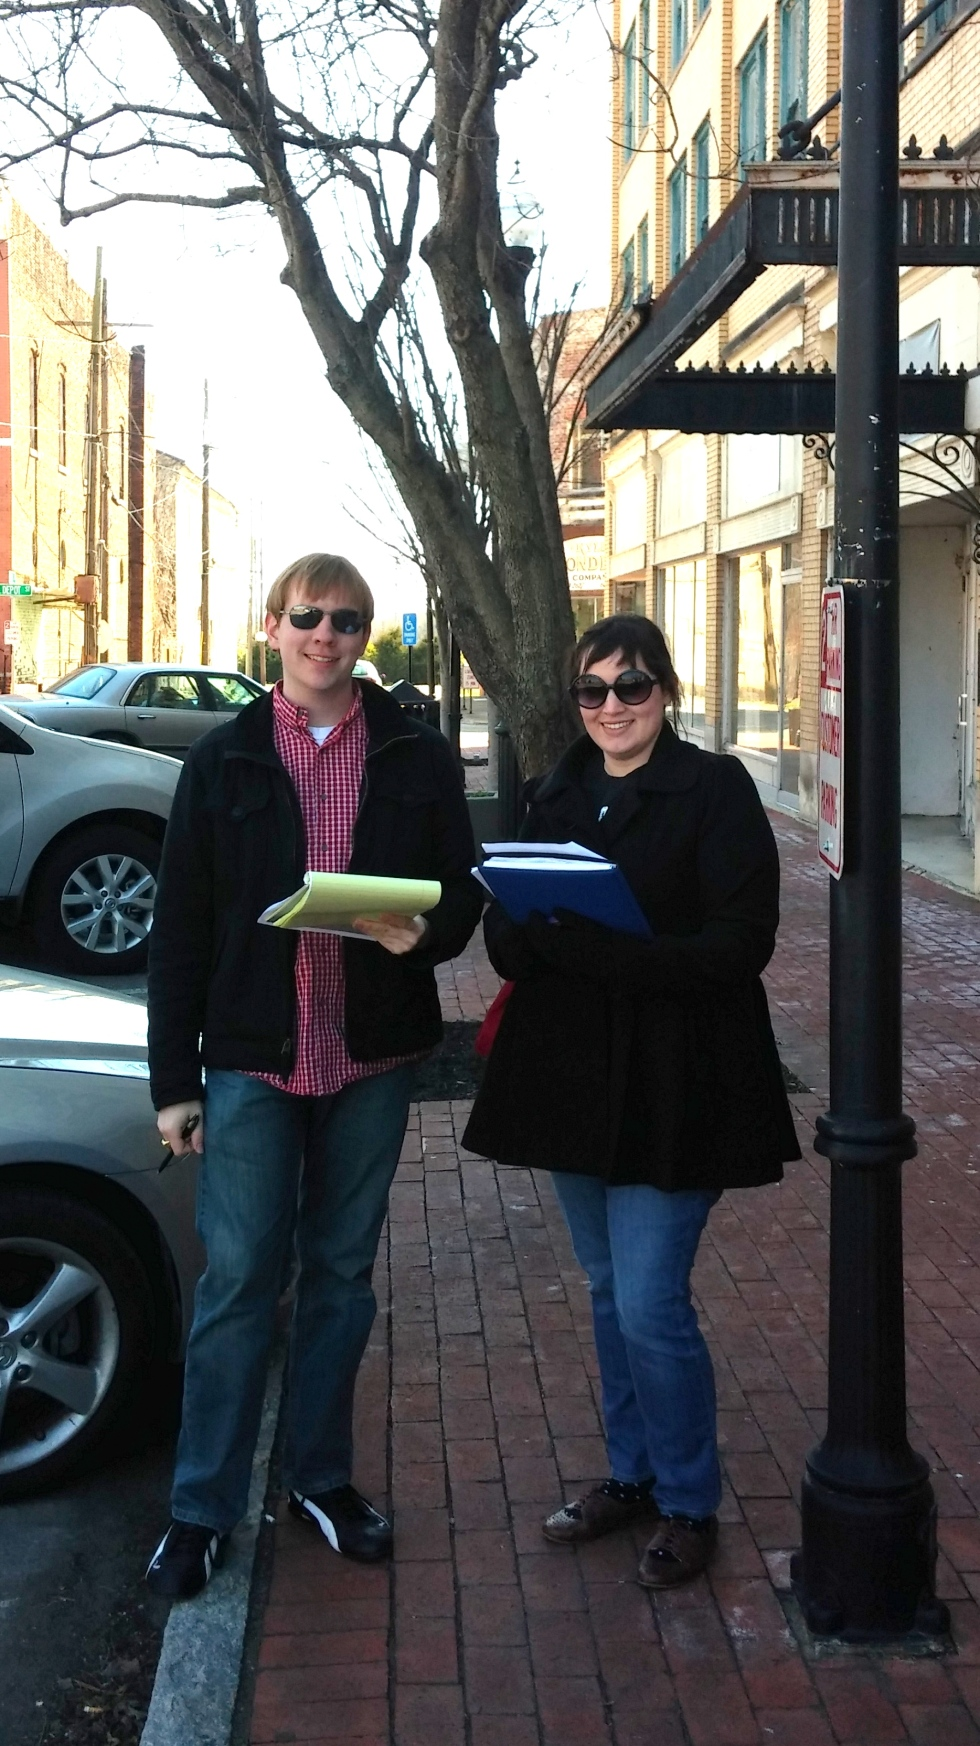 Joey and Jenna in Shelbyville